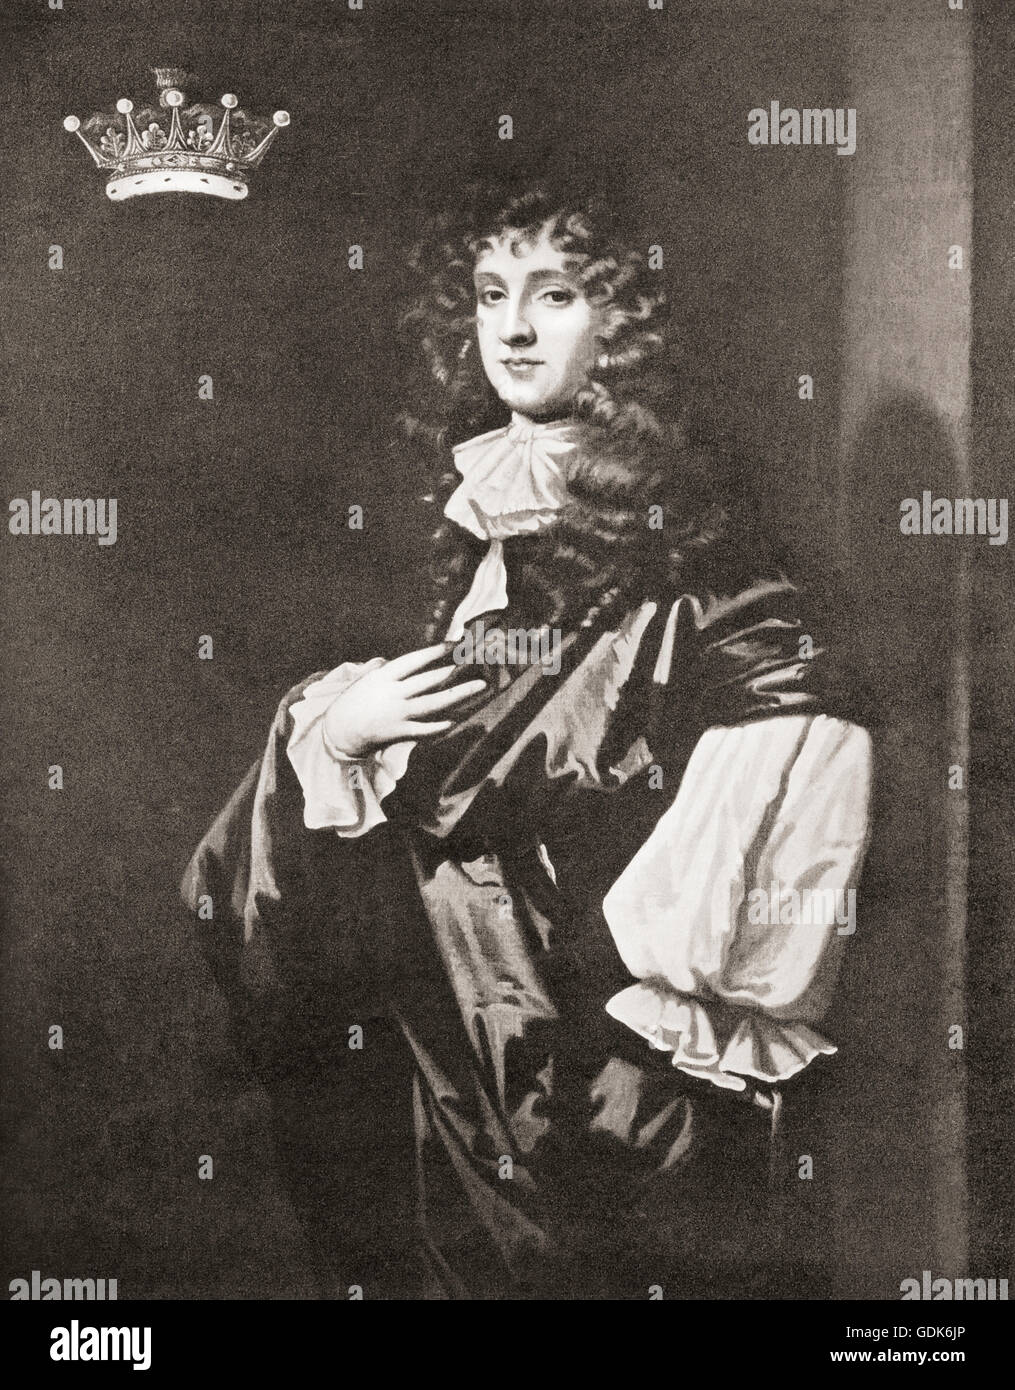 Edward Montagu, 2nd Earl of Sandwich, 1647/48 – 1688. After the painting by Sir Peter Lely. - Stock Image